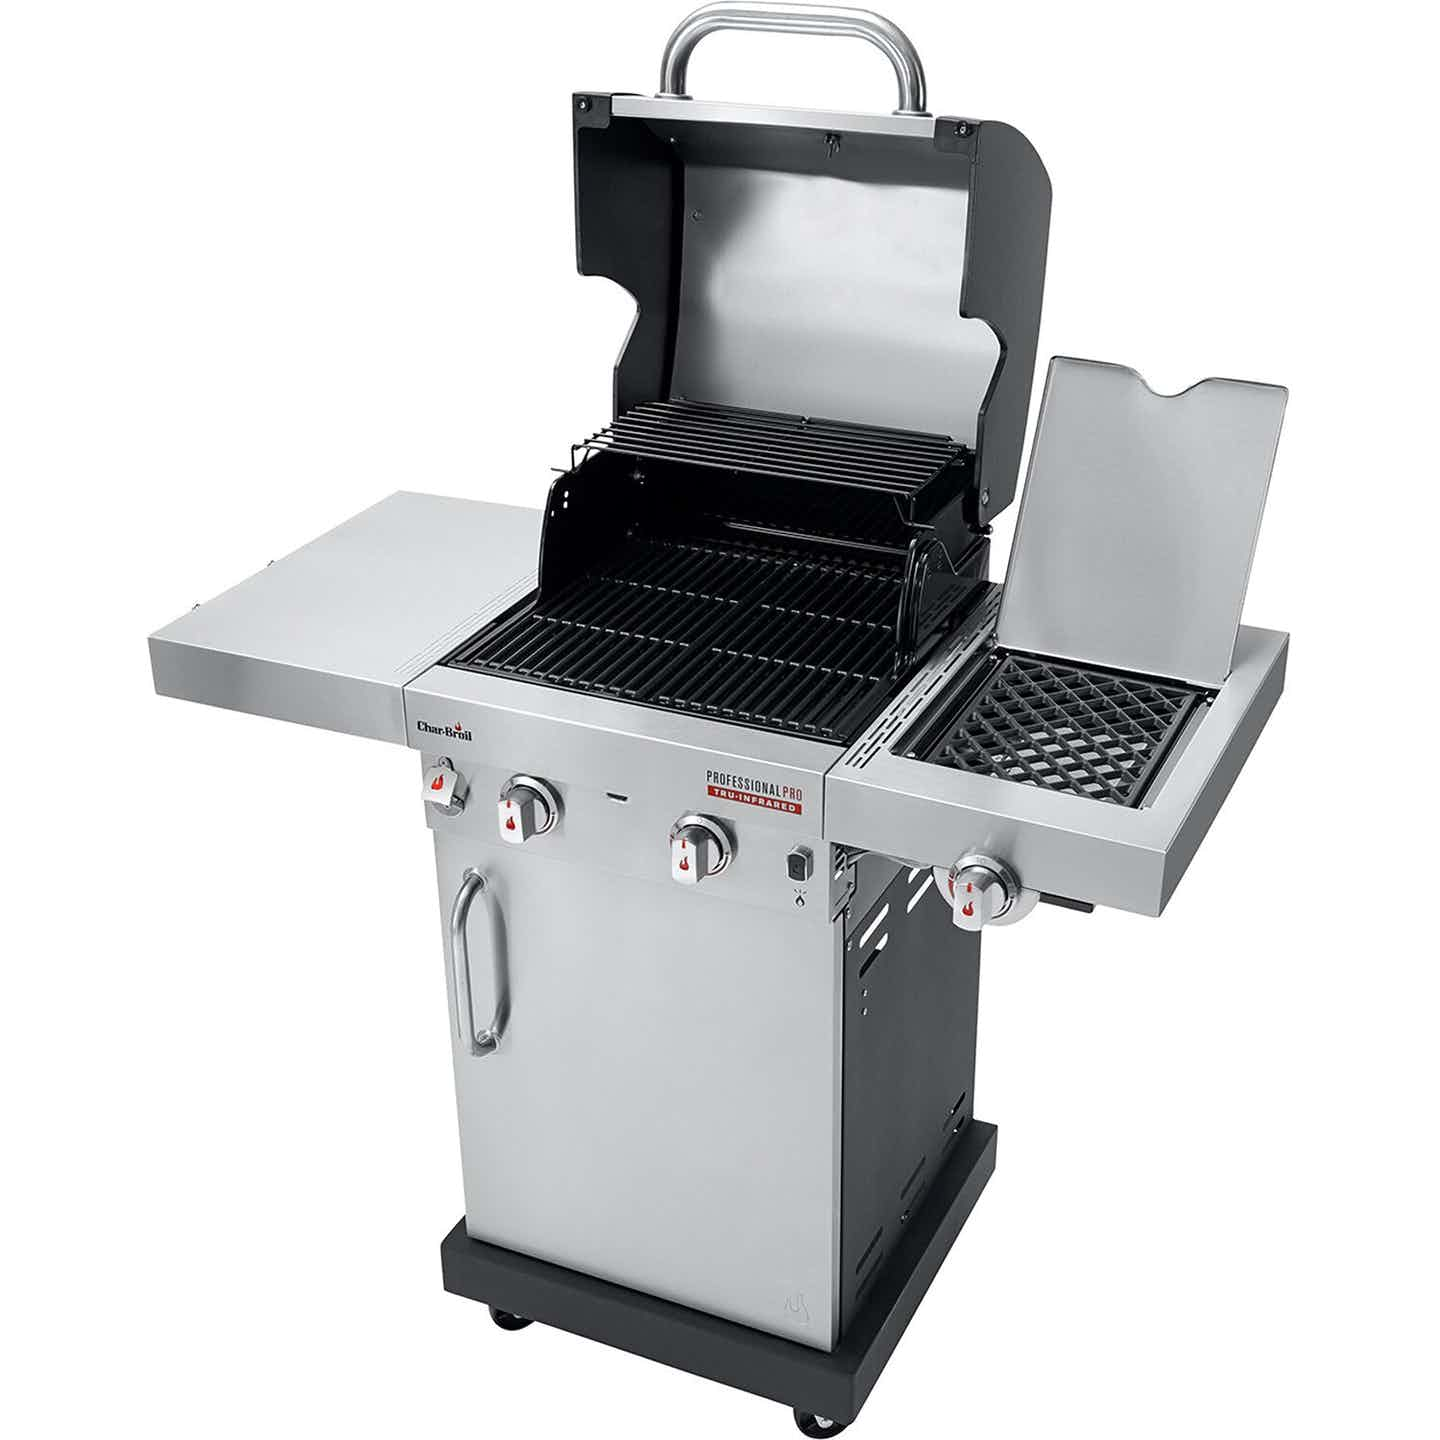 Char-Broil Professional Pro 2 S mit 2 Brennern & Tru-Infrared-System